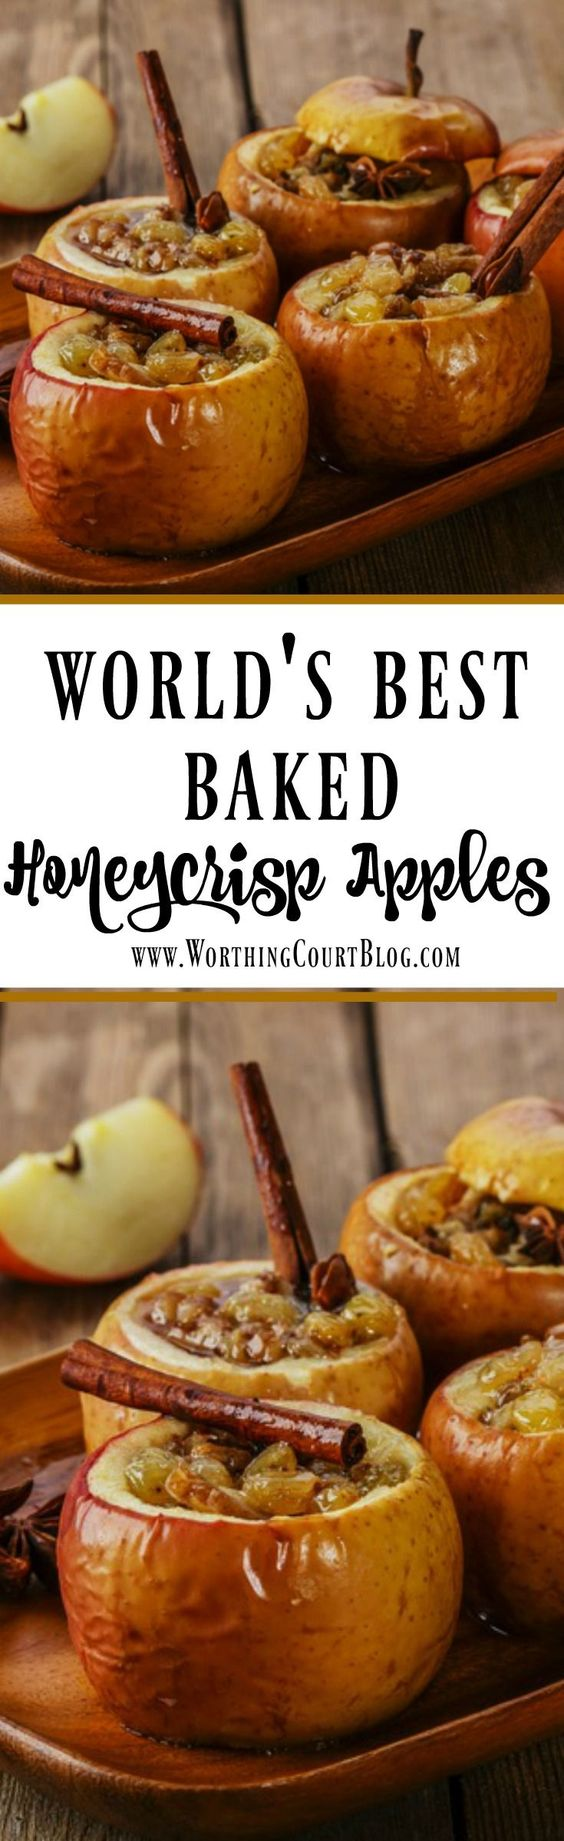 If you love apples, you're going to swoon over this easy to prepare and oh-so-tasty recipe for Baked Honeycrisp Apples    Worthing Court